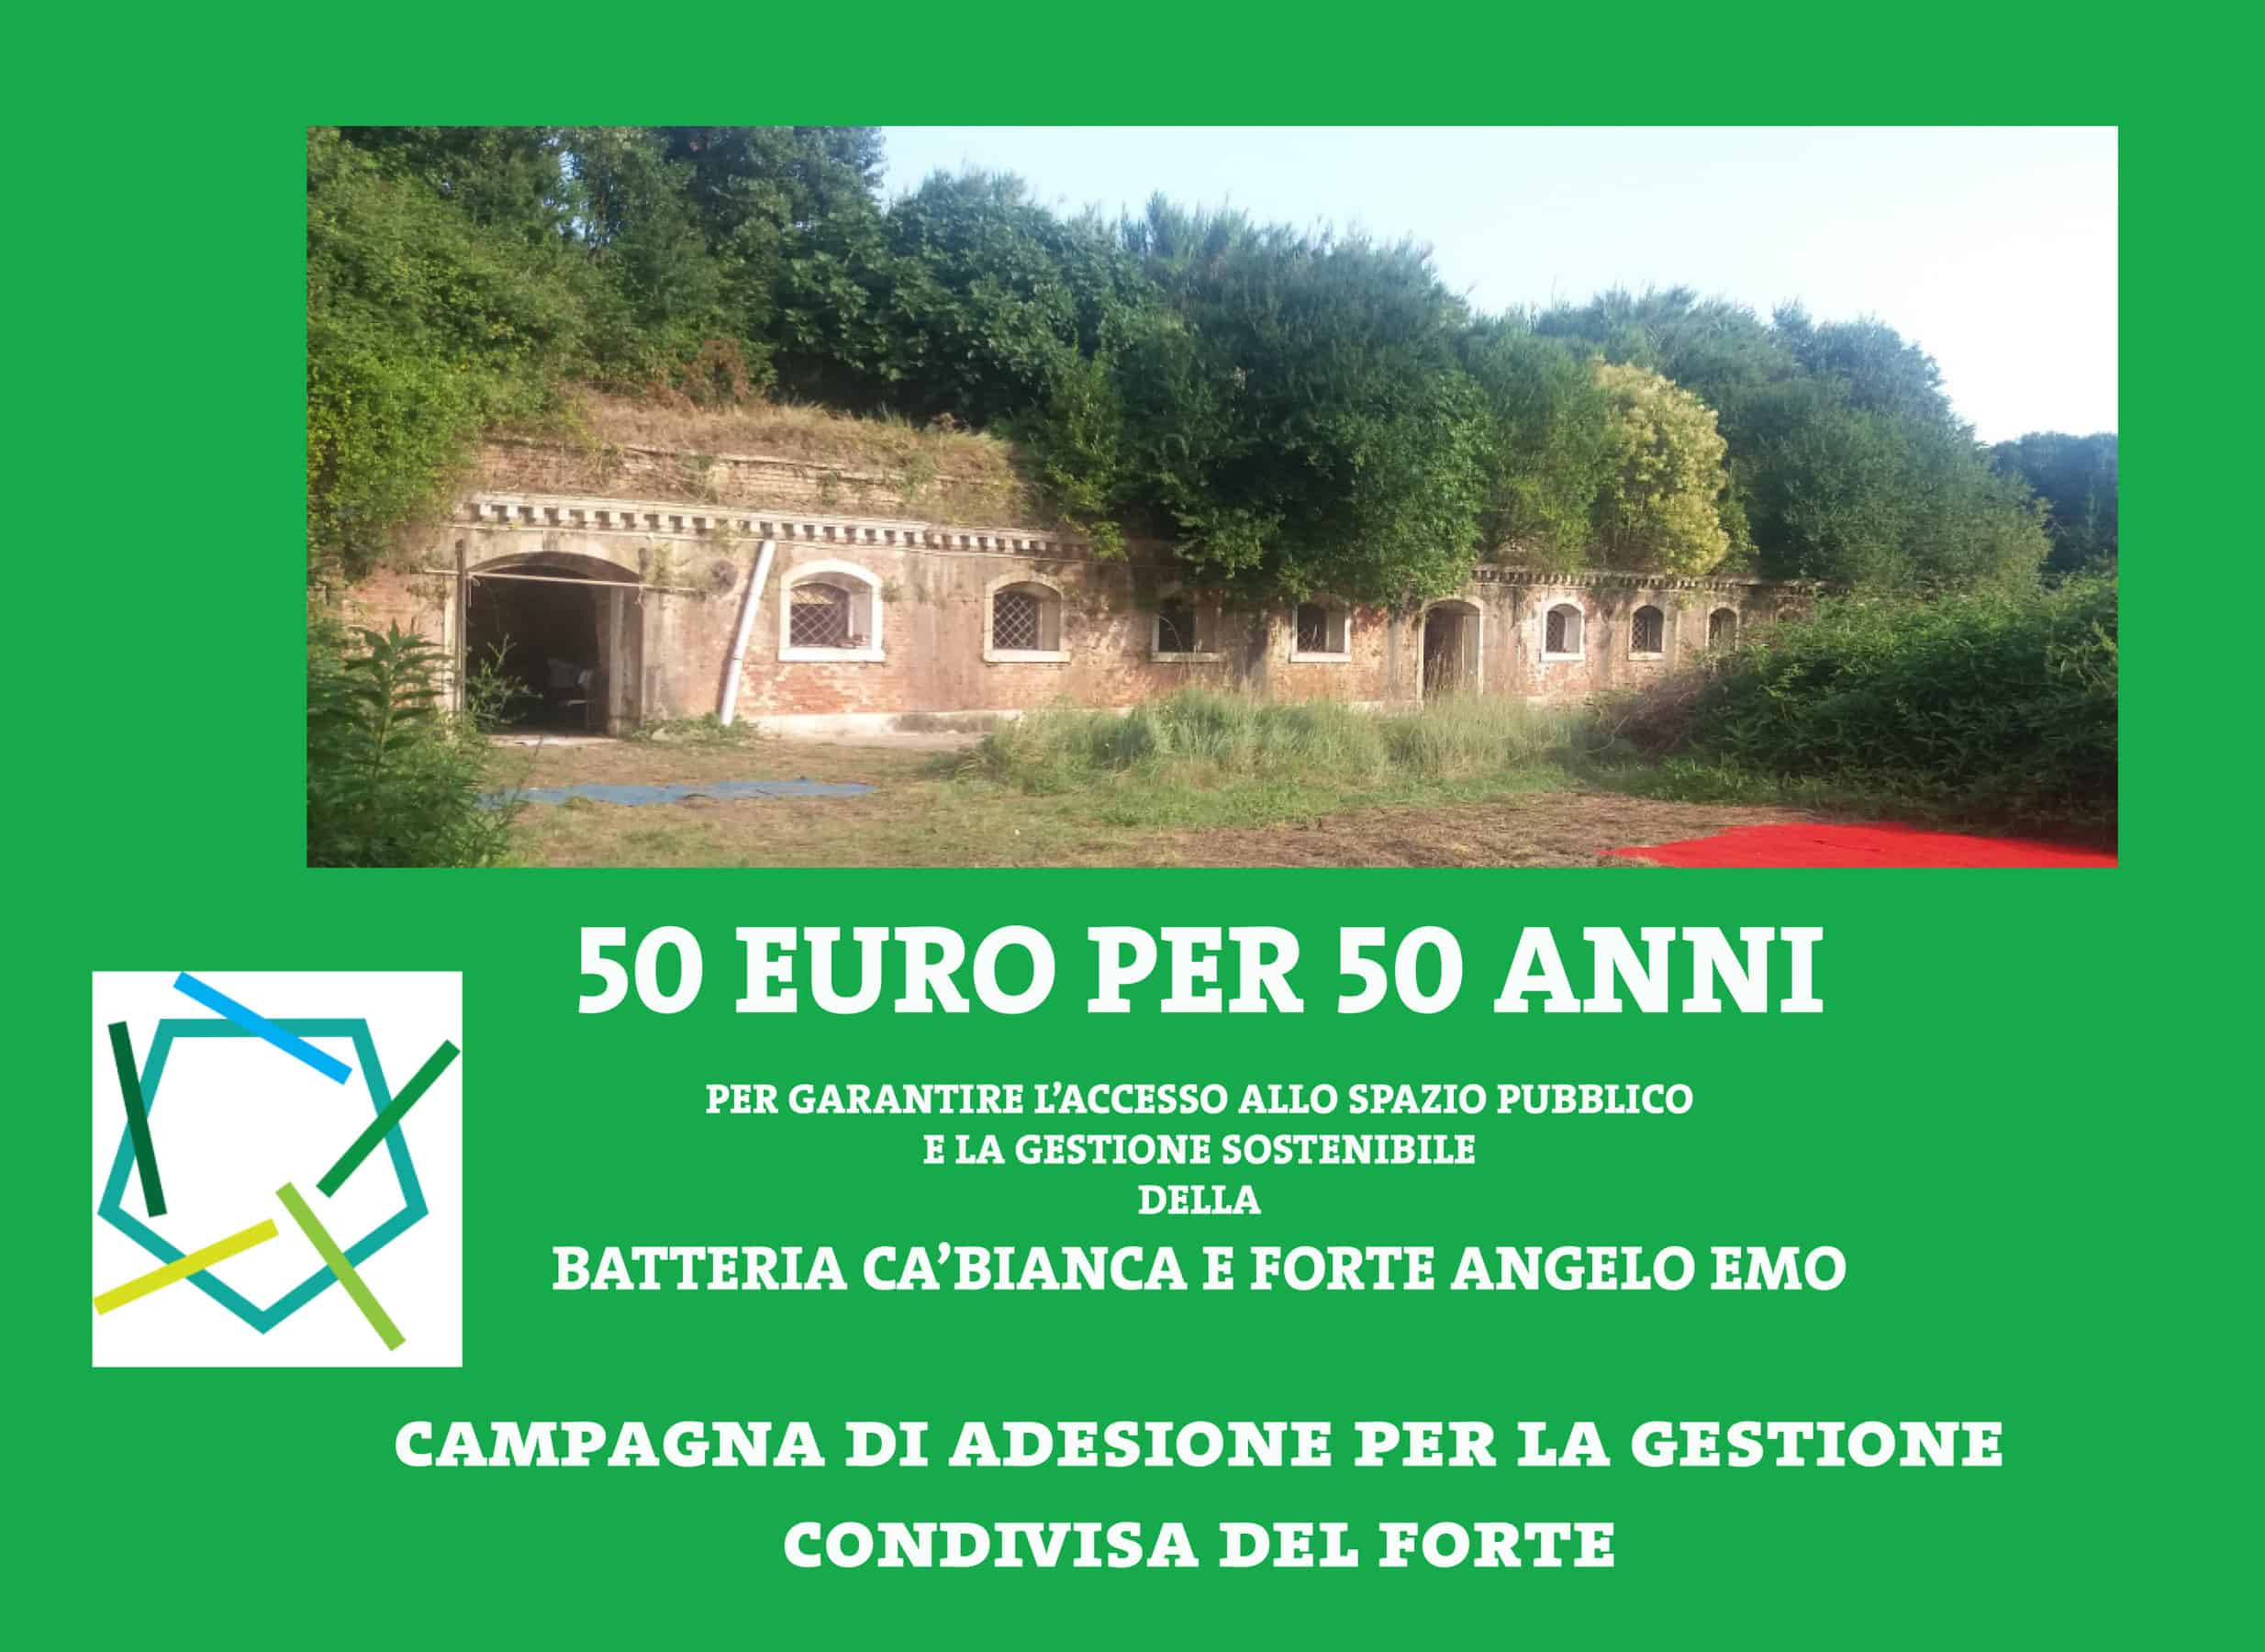 CROWD FUNDING CAMPAIGN 50 EURO FOR 50 YEARS